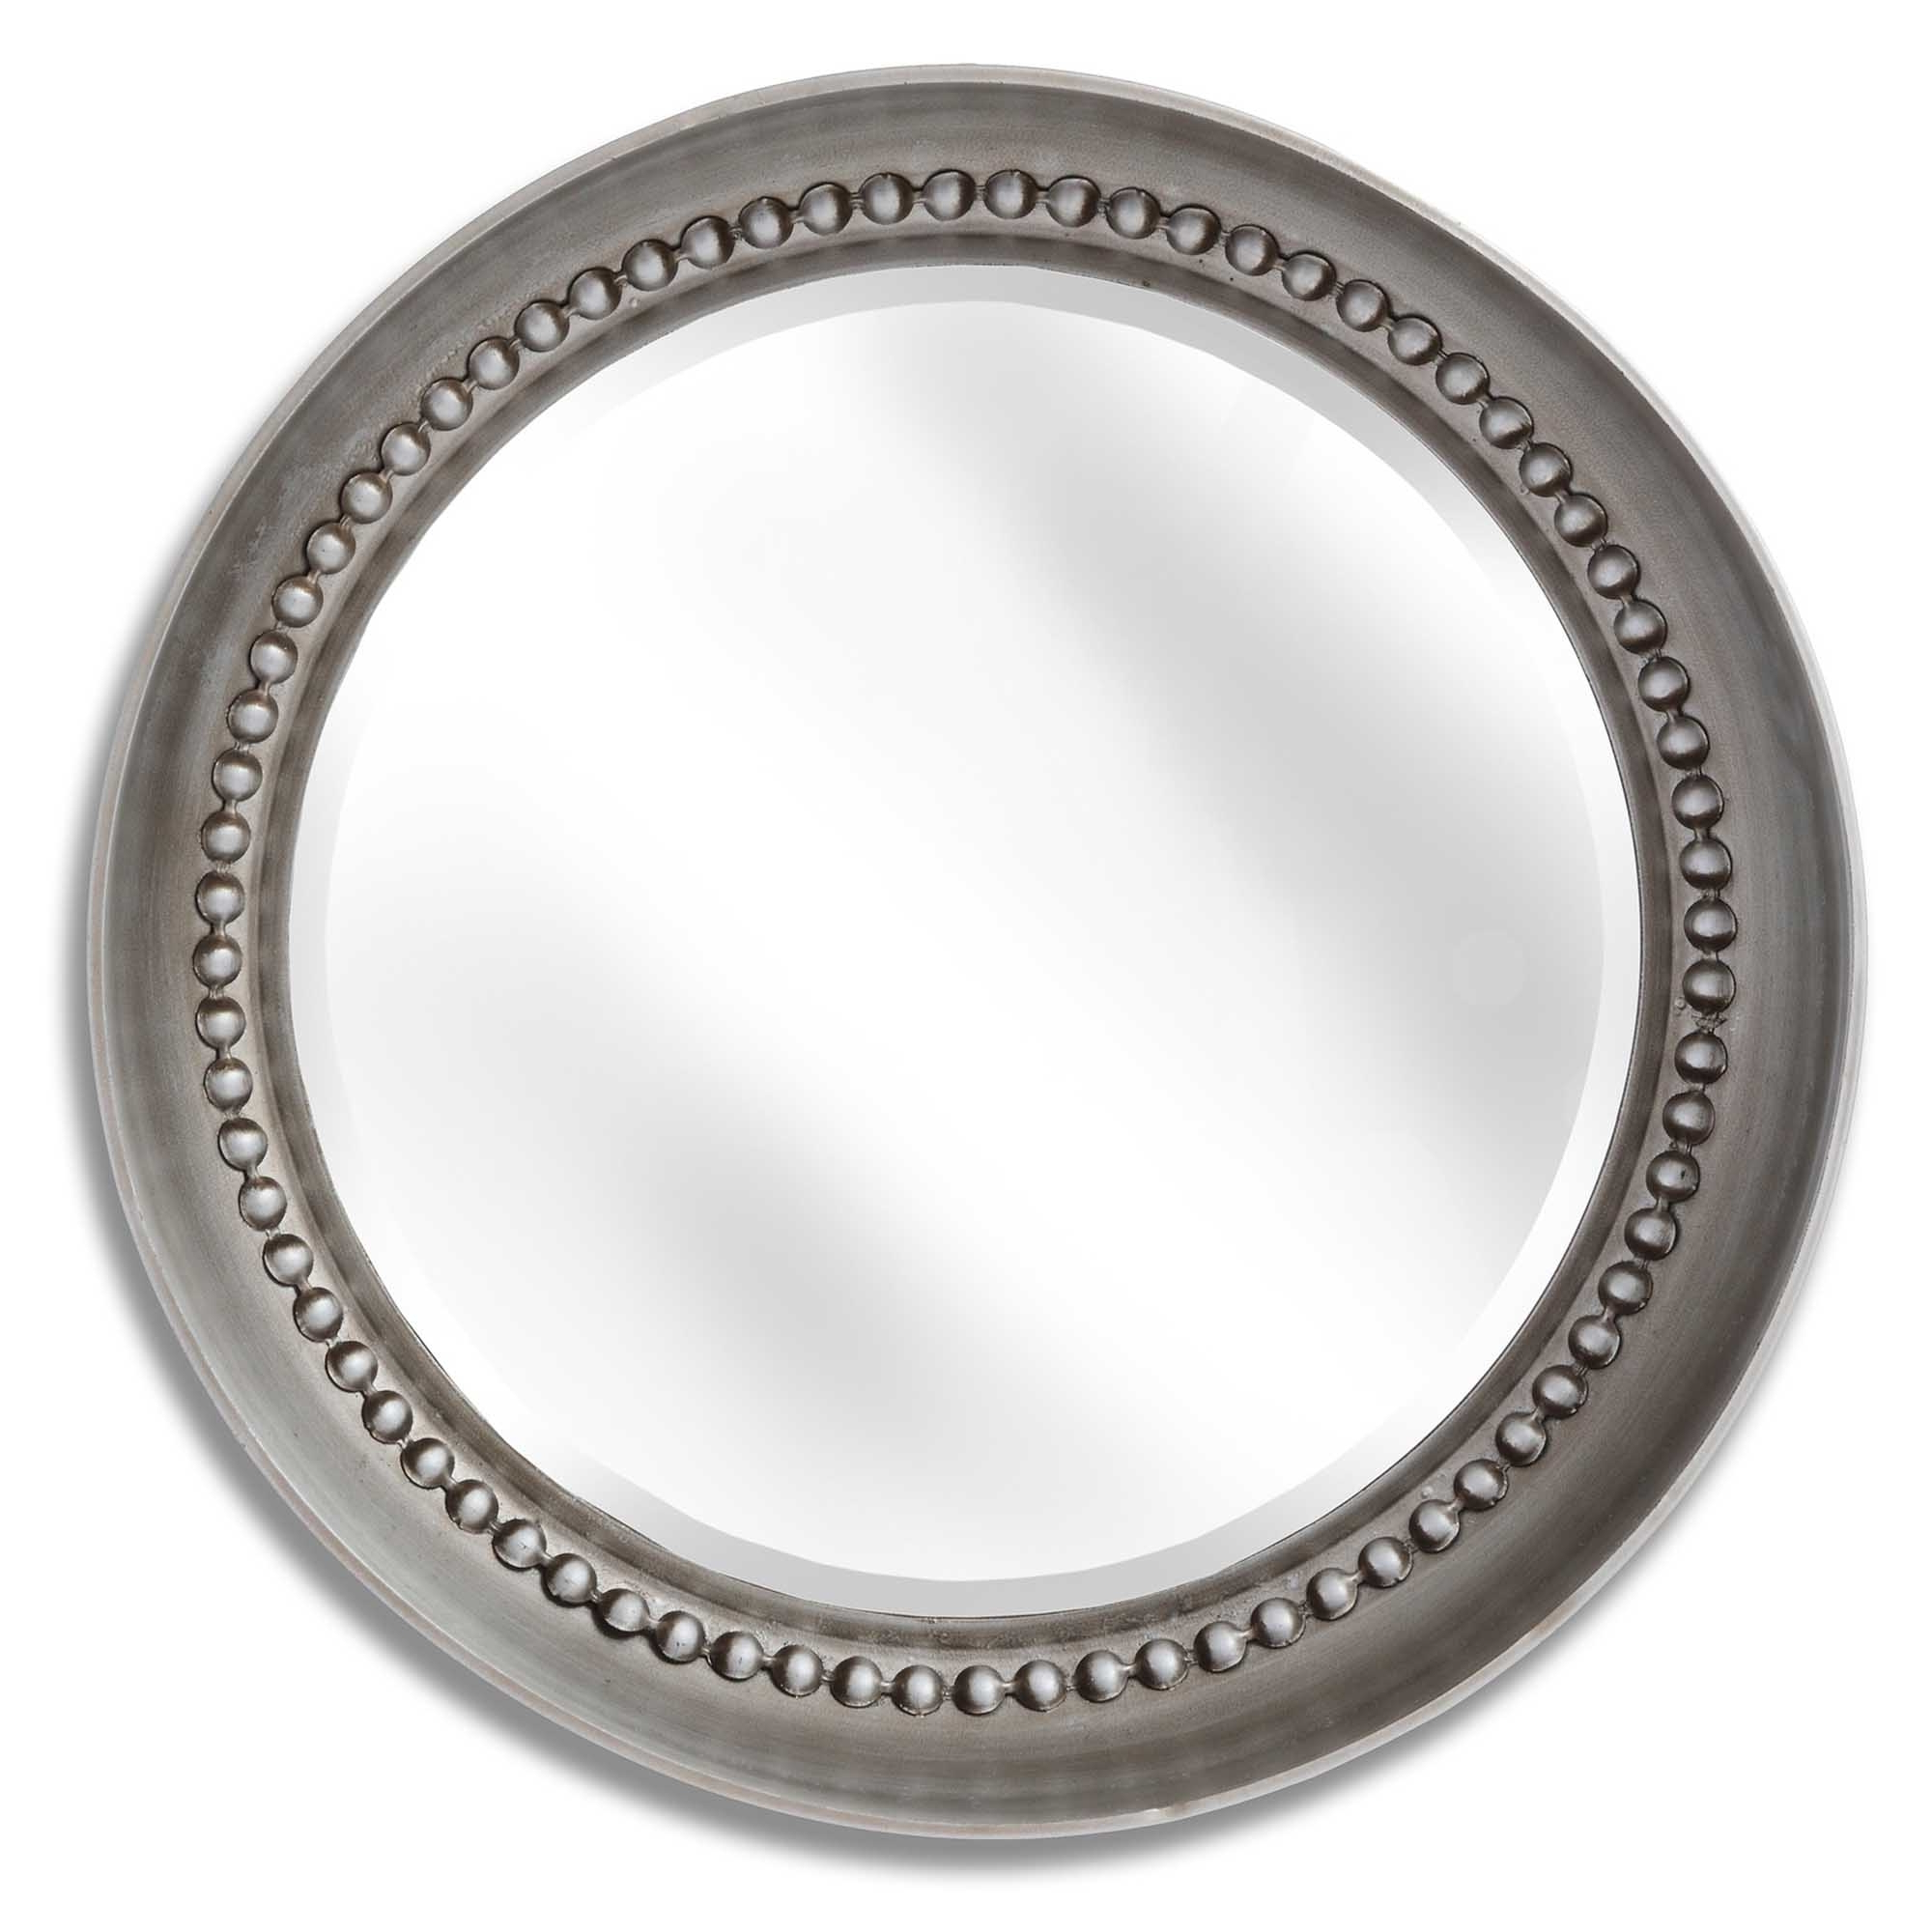 Small Silver Beaded Dish Wall Mirror With Most Recently Released Silver Beaded Wall Mirrors (Gallery 16 of 20)